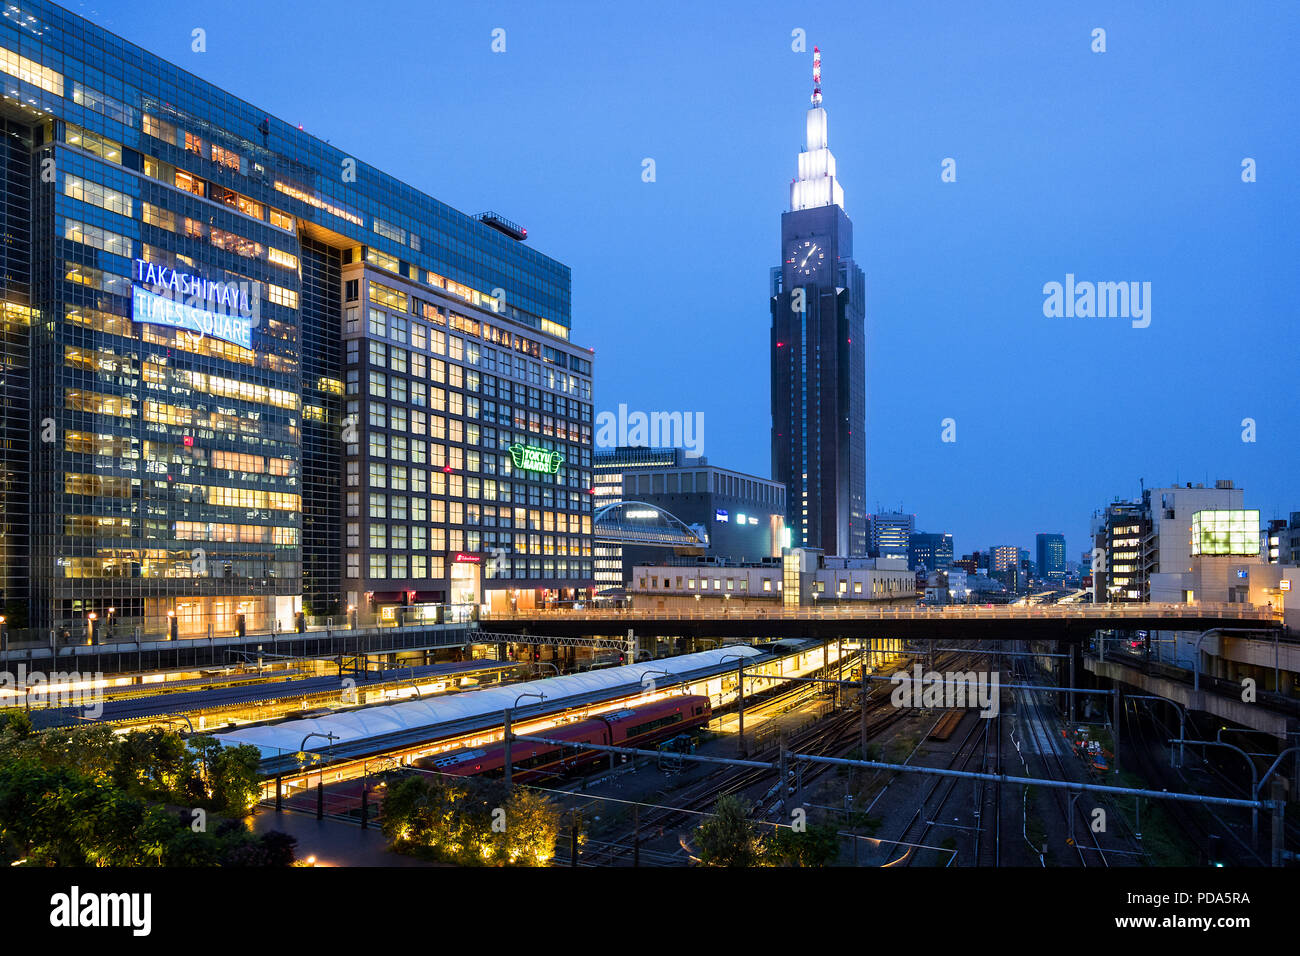 Japan, Honshu island, Kanto, Tokyo, the Shinjuku district and Dokomo tower. - Stock Image